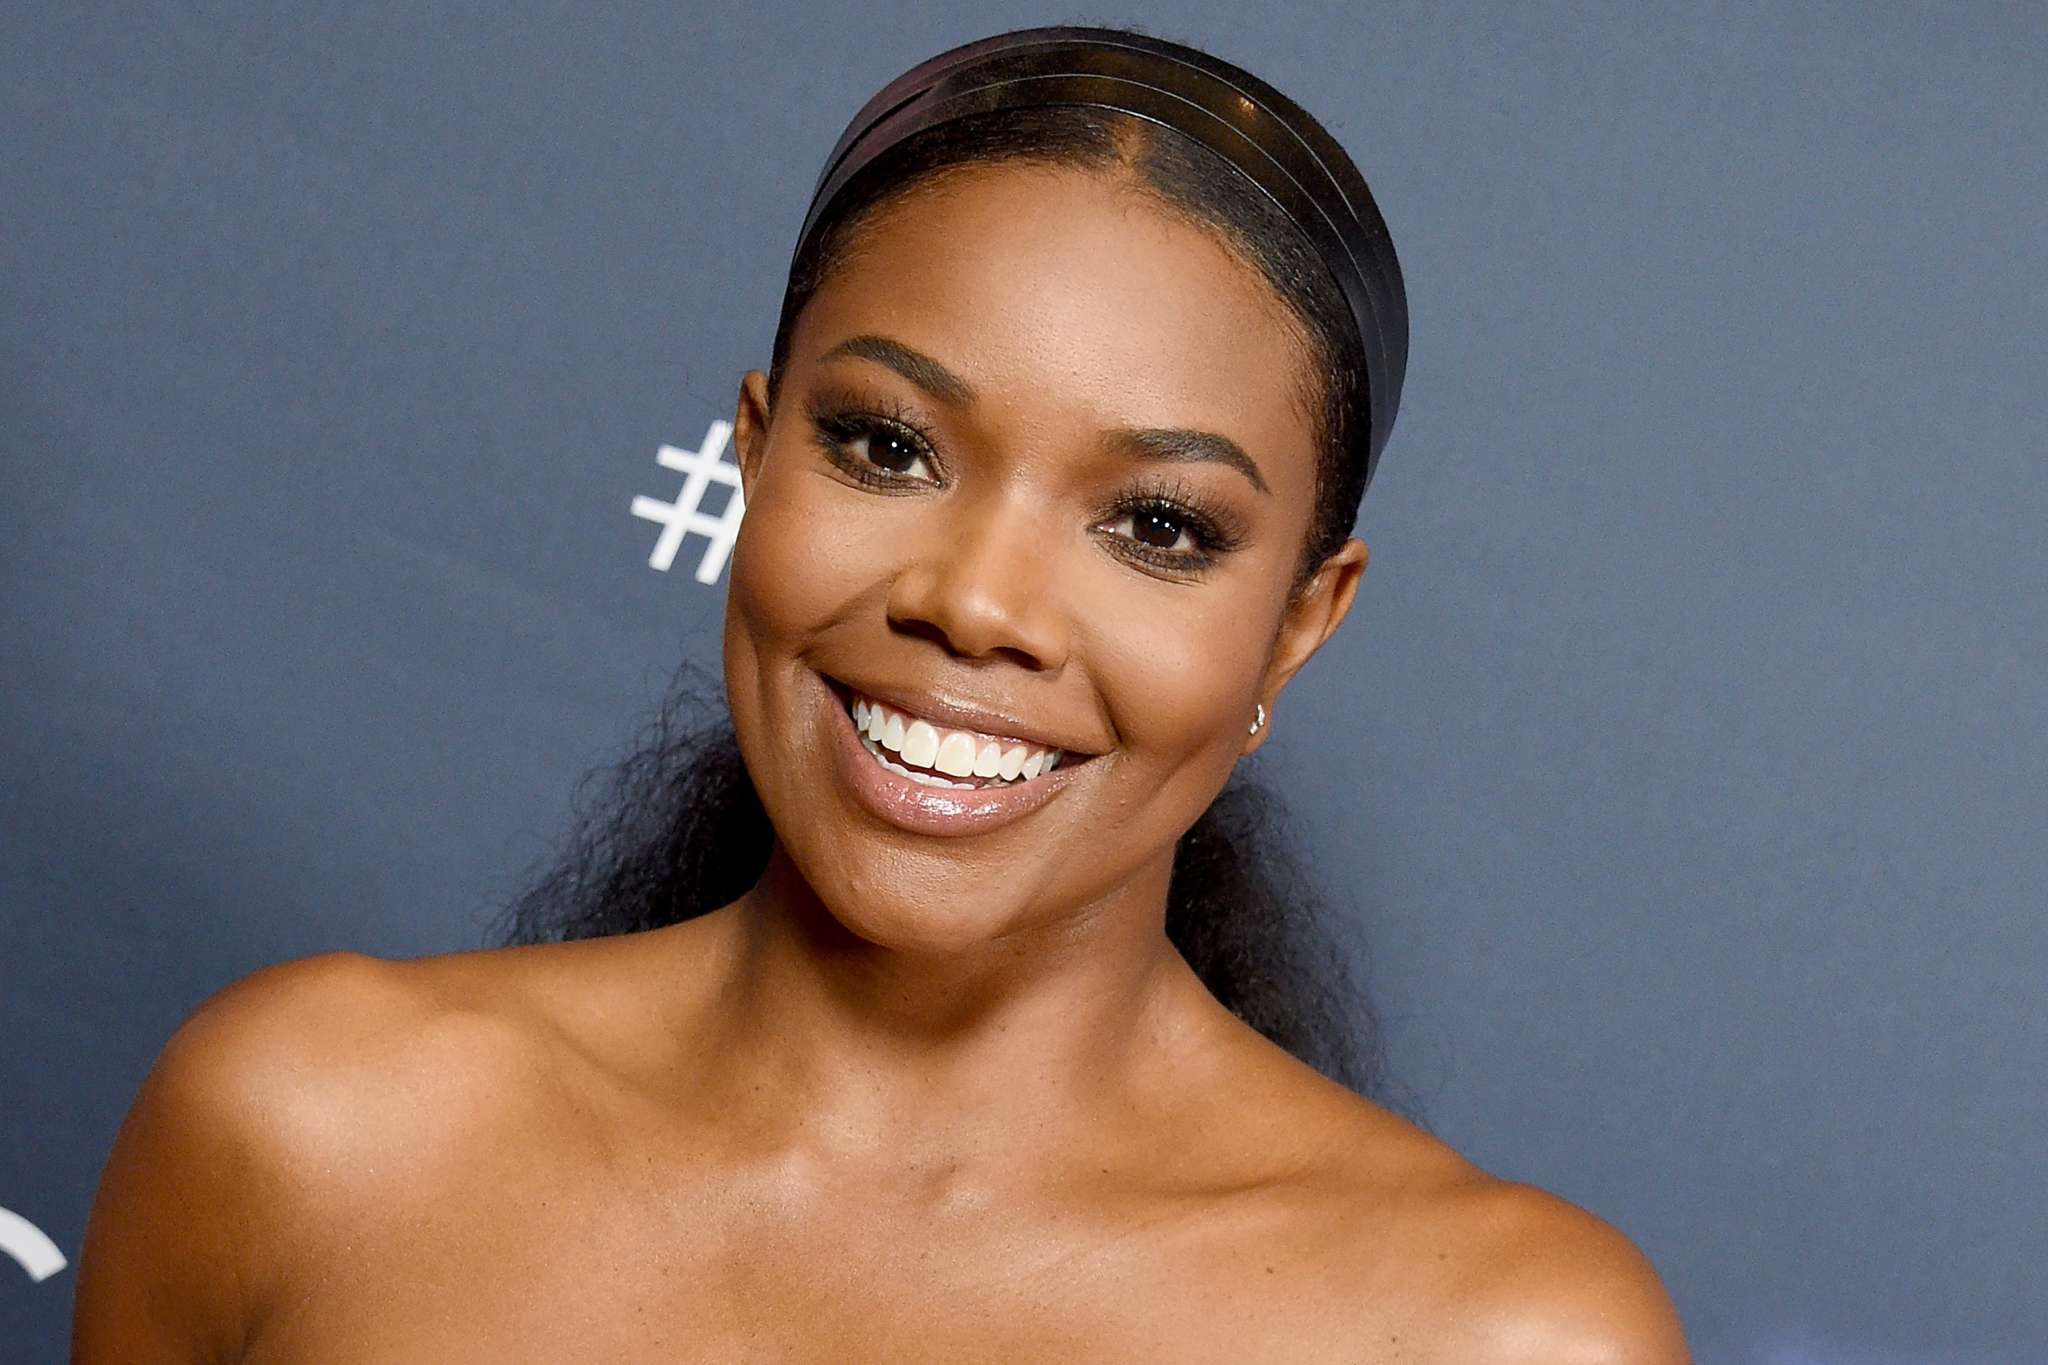 gabrielle-union-is-glowing-in-these-photos-she-recently-shared